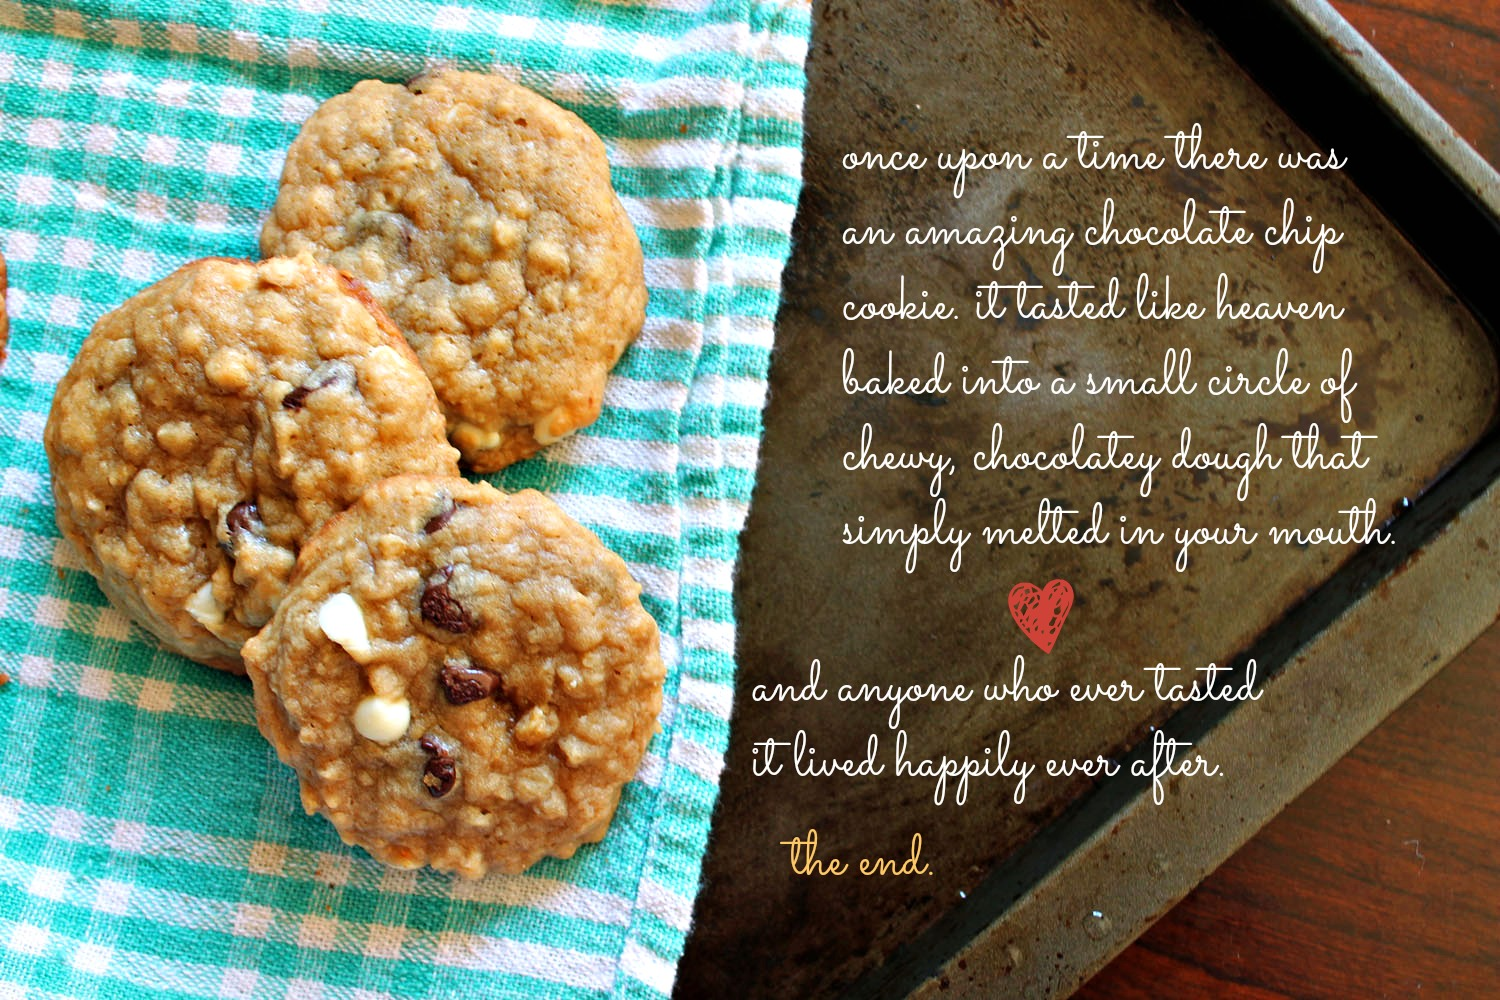 The Amazing 'Un-Relationship' Chocolate Chip Cookie--29--111413